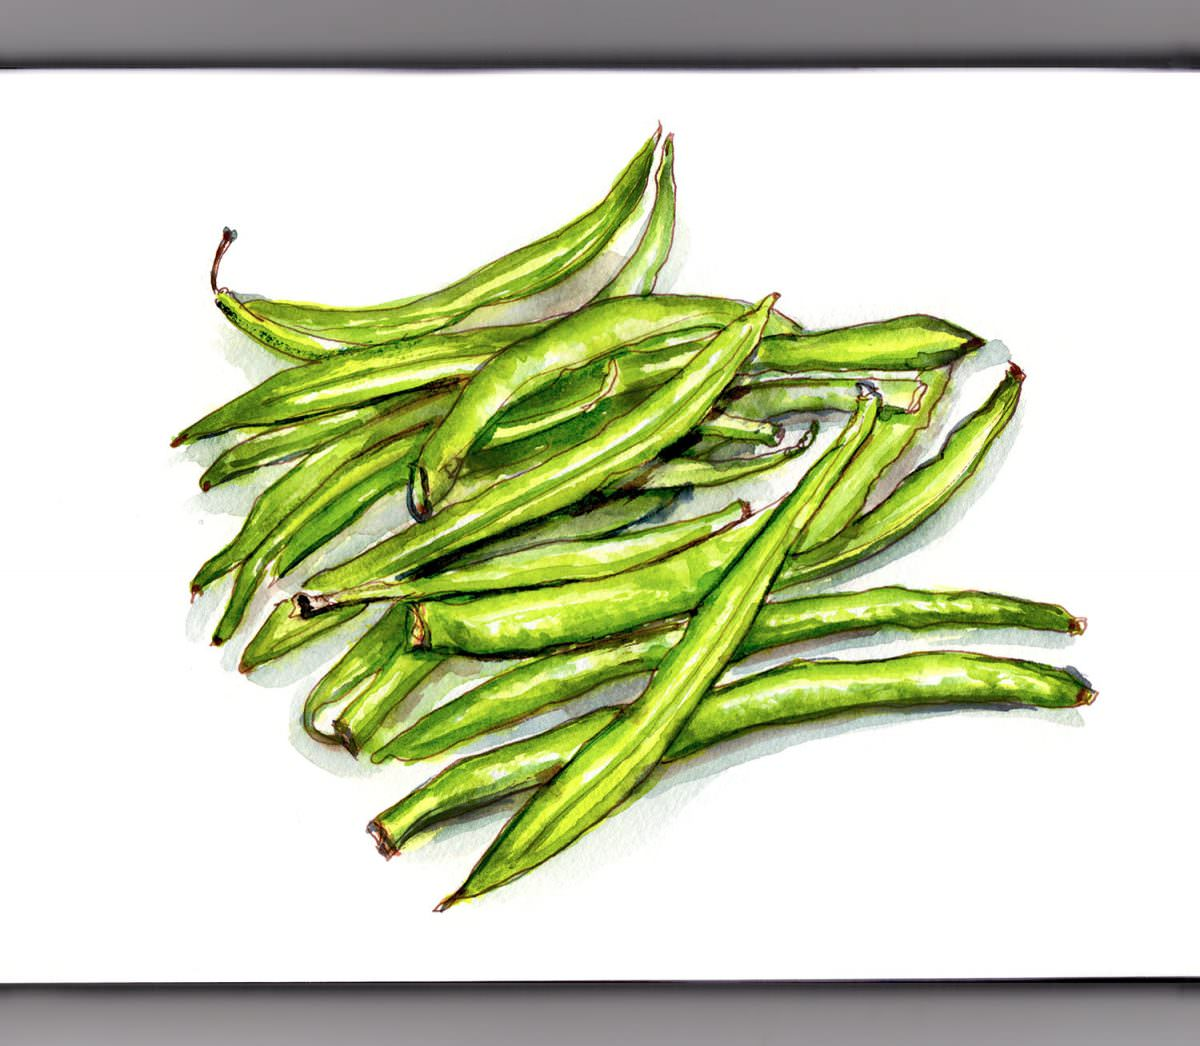 #WorldWatercolorGroup - Day 15 - Some Green Beans - Doodlewash